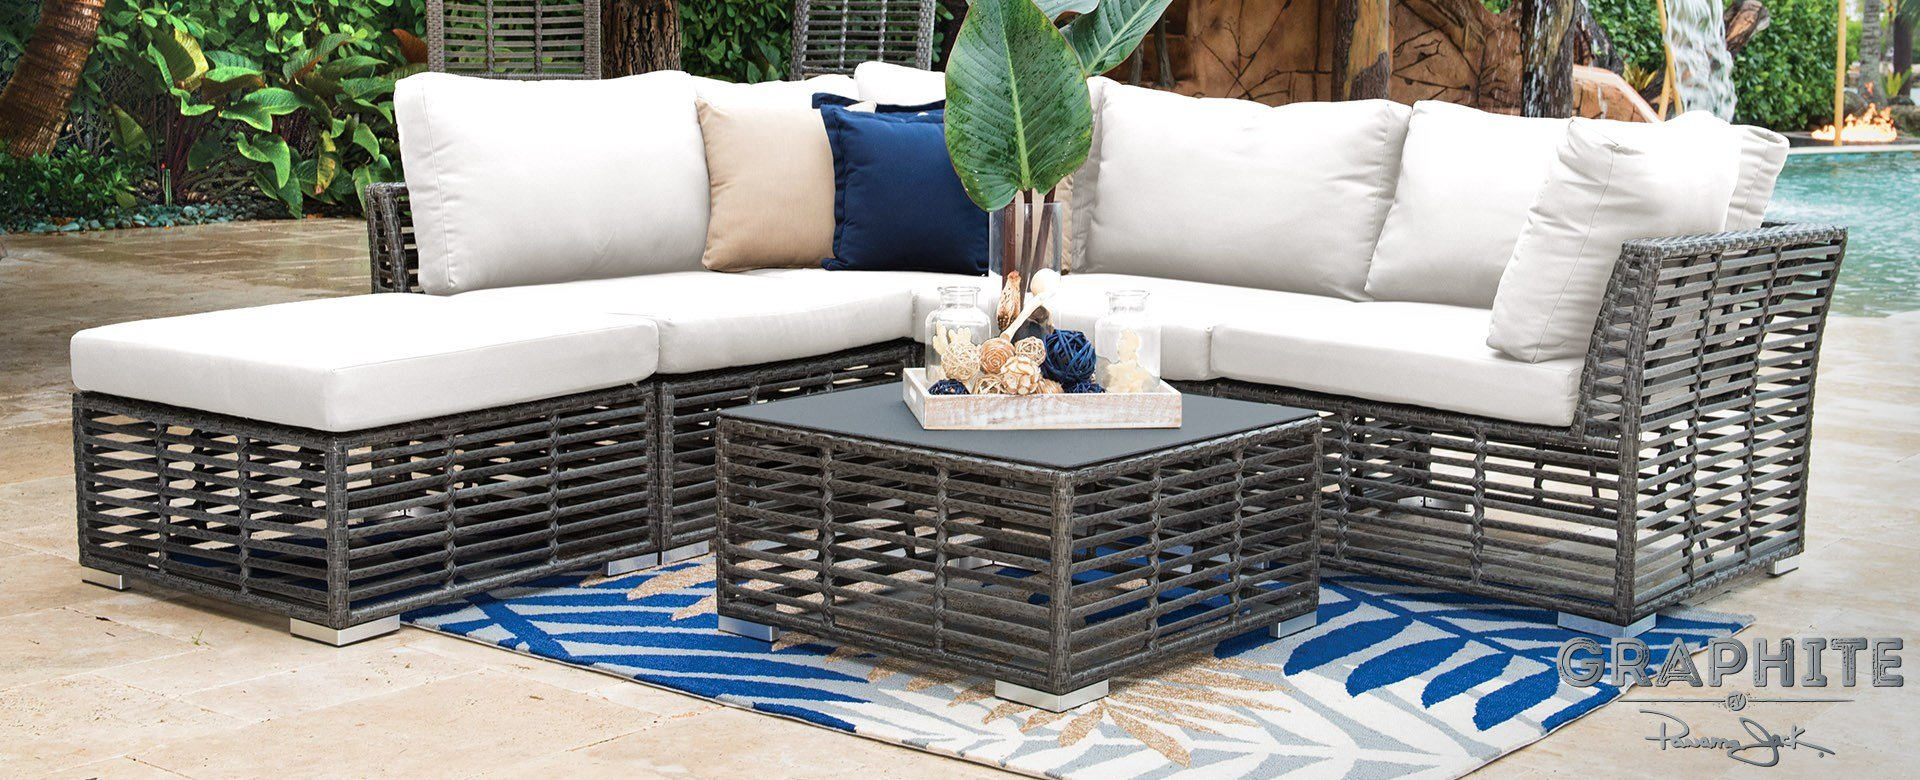 Best Pelican Reef Panama Jack Outdoor Sunroom Furniture With Pictures